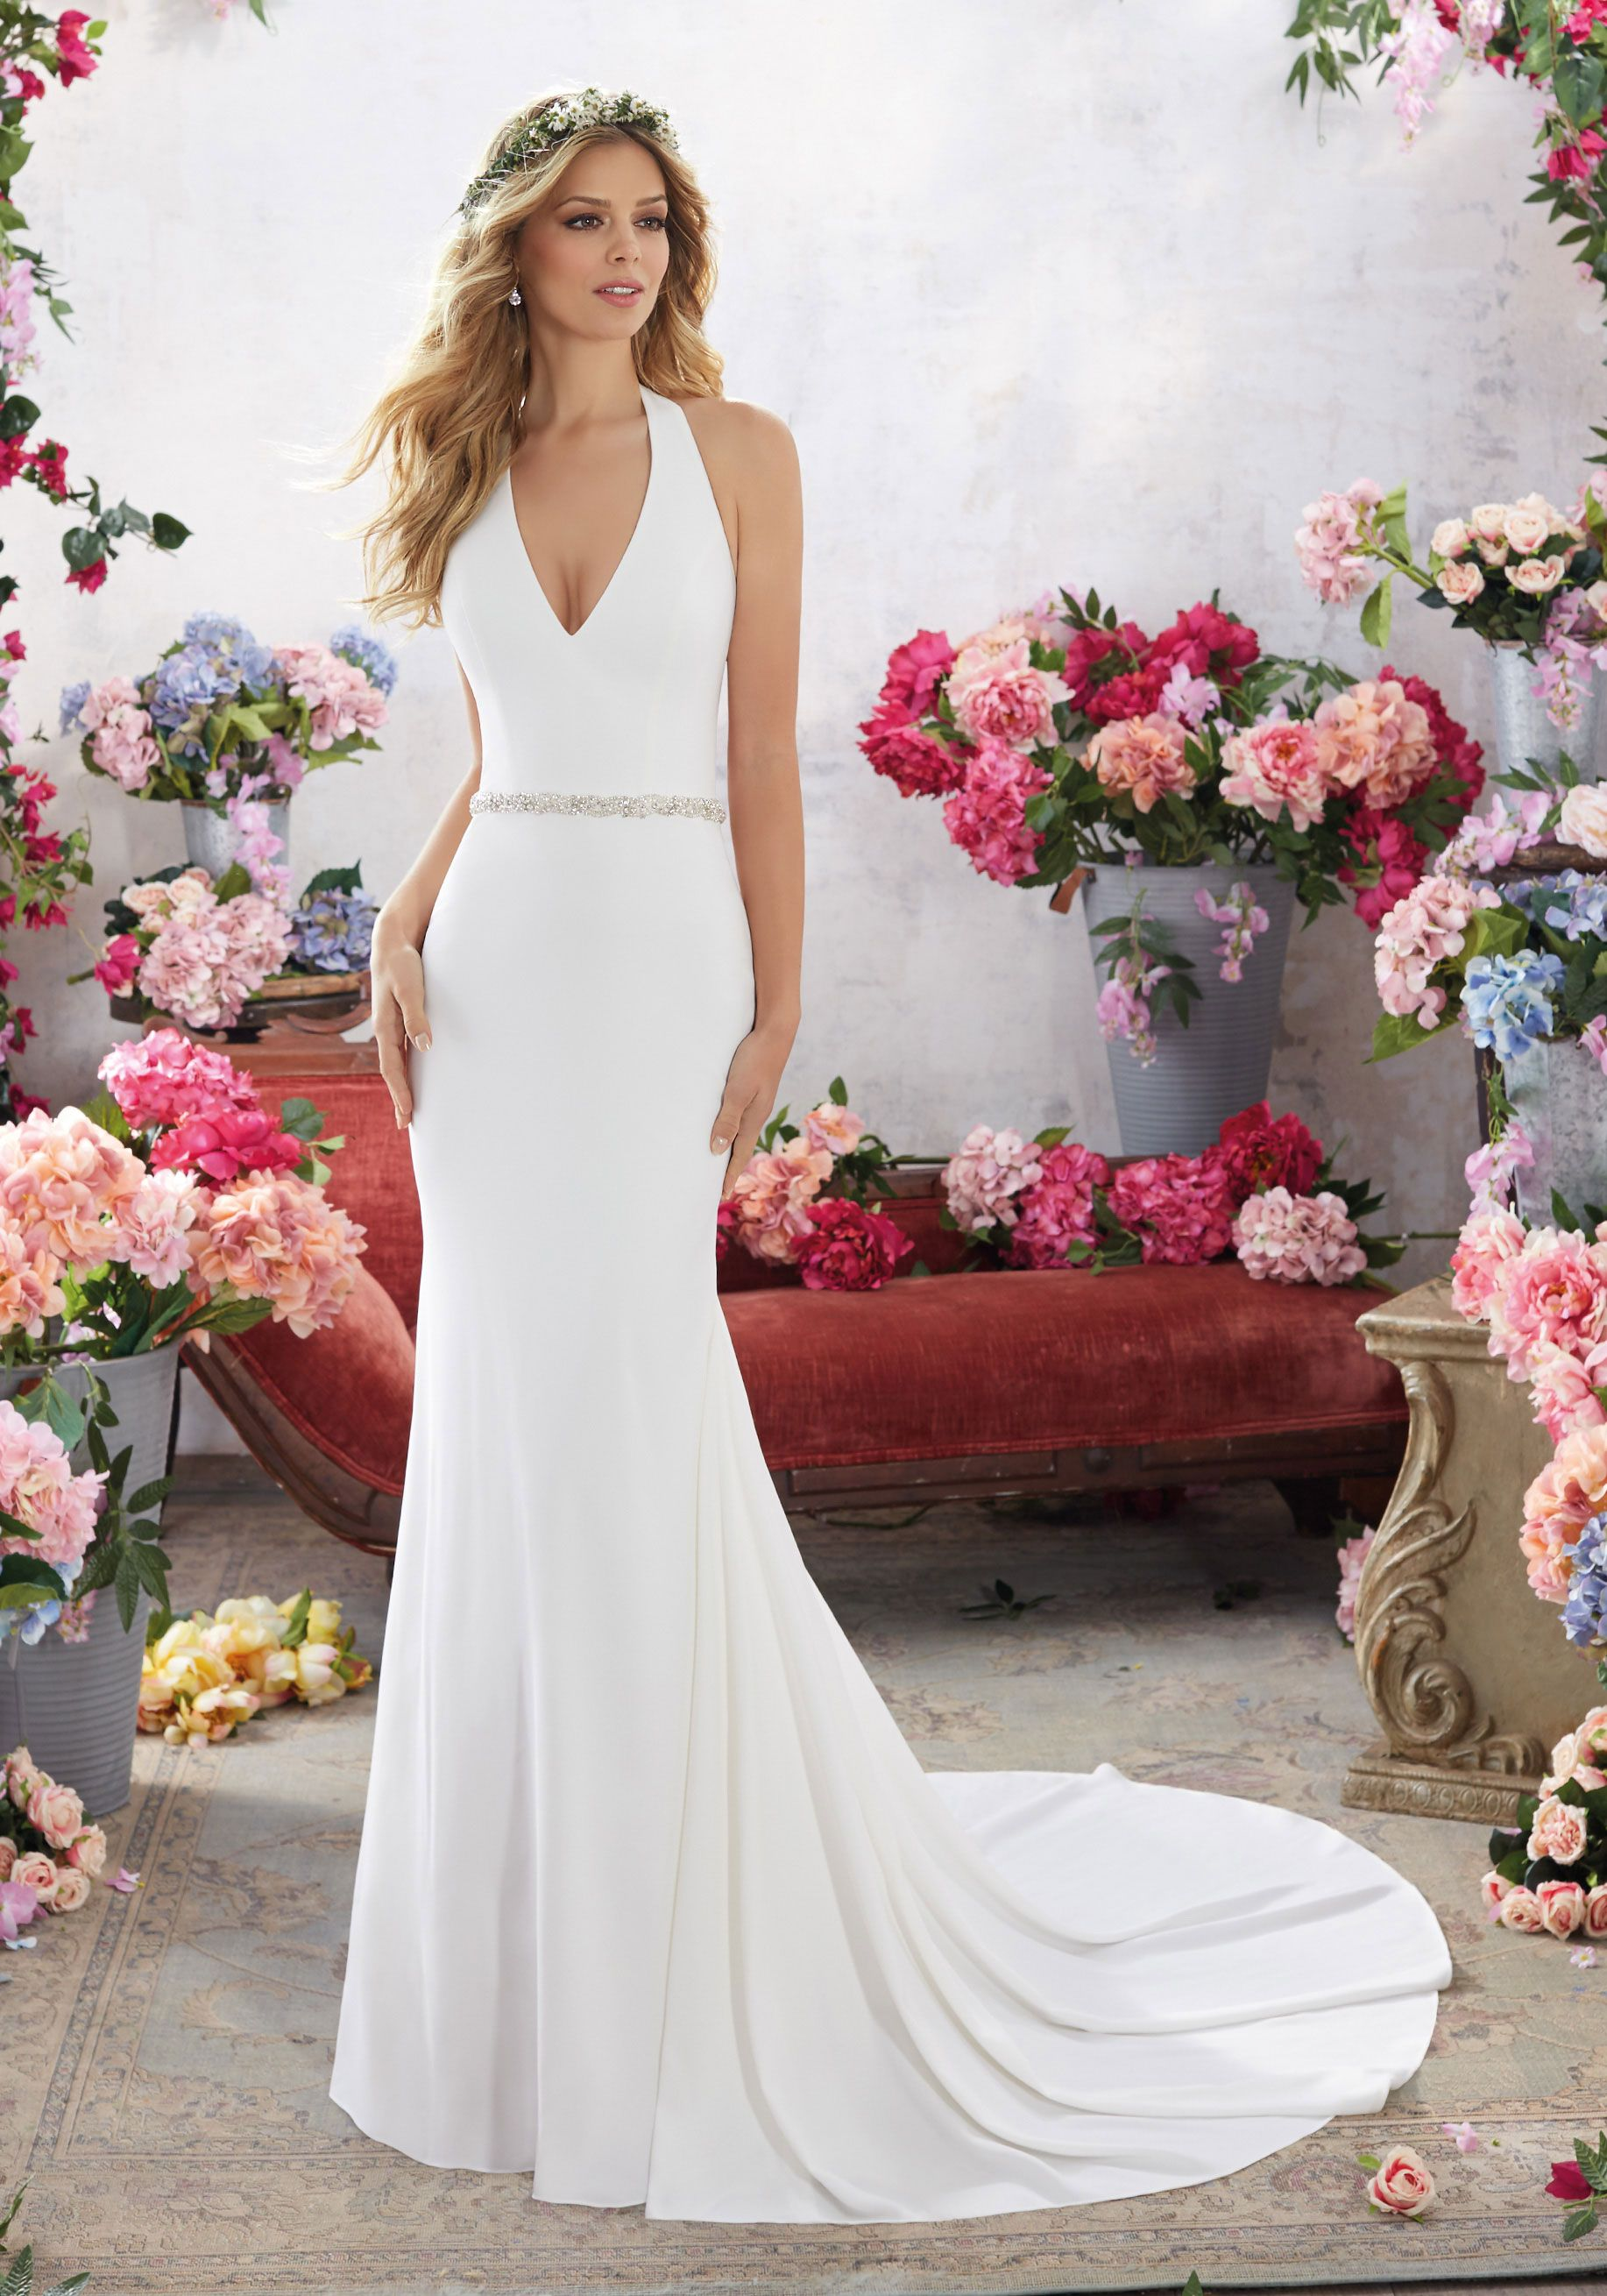 Simple Designer Wedding Dresses and Bridal Gowns by Morilee This Sheath Wedding Gown Features a Halter